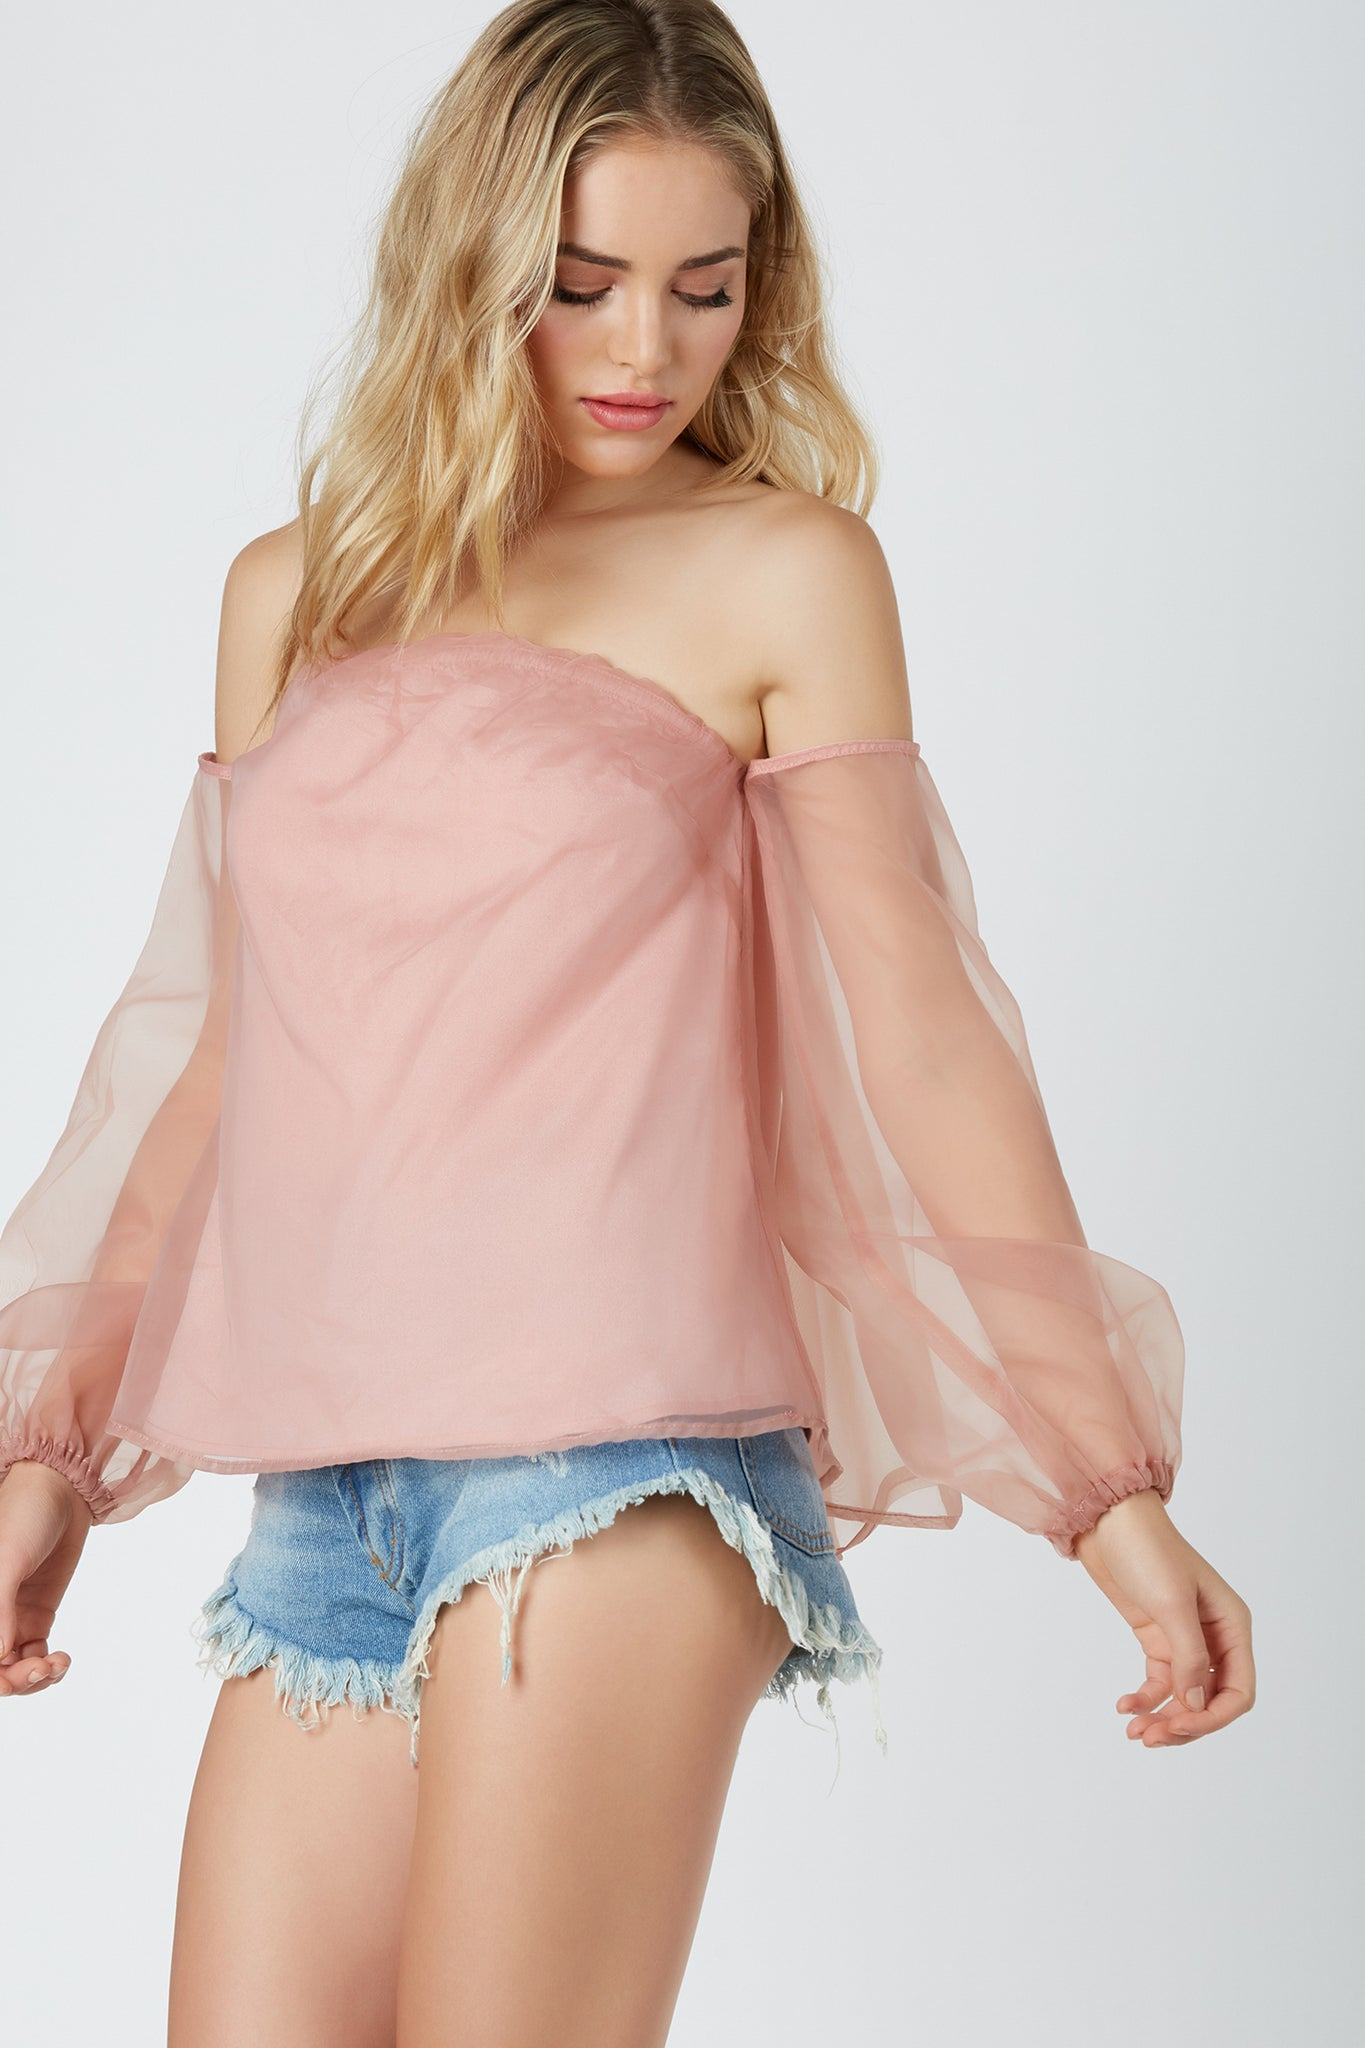 Chic off shoulder blouse with elasticized trim at top. Lined body with sheer chiffon overlay.